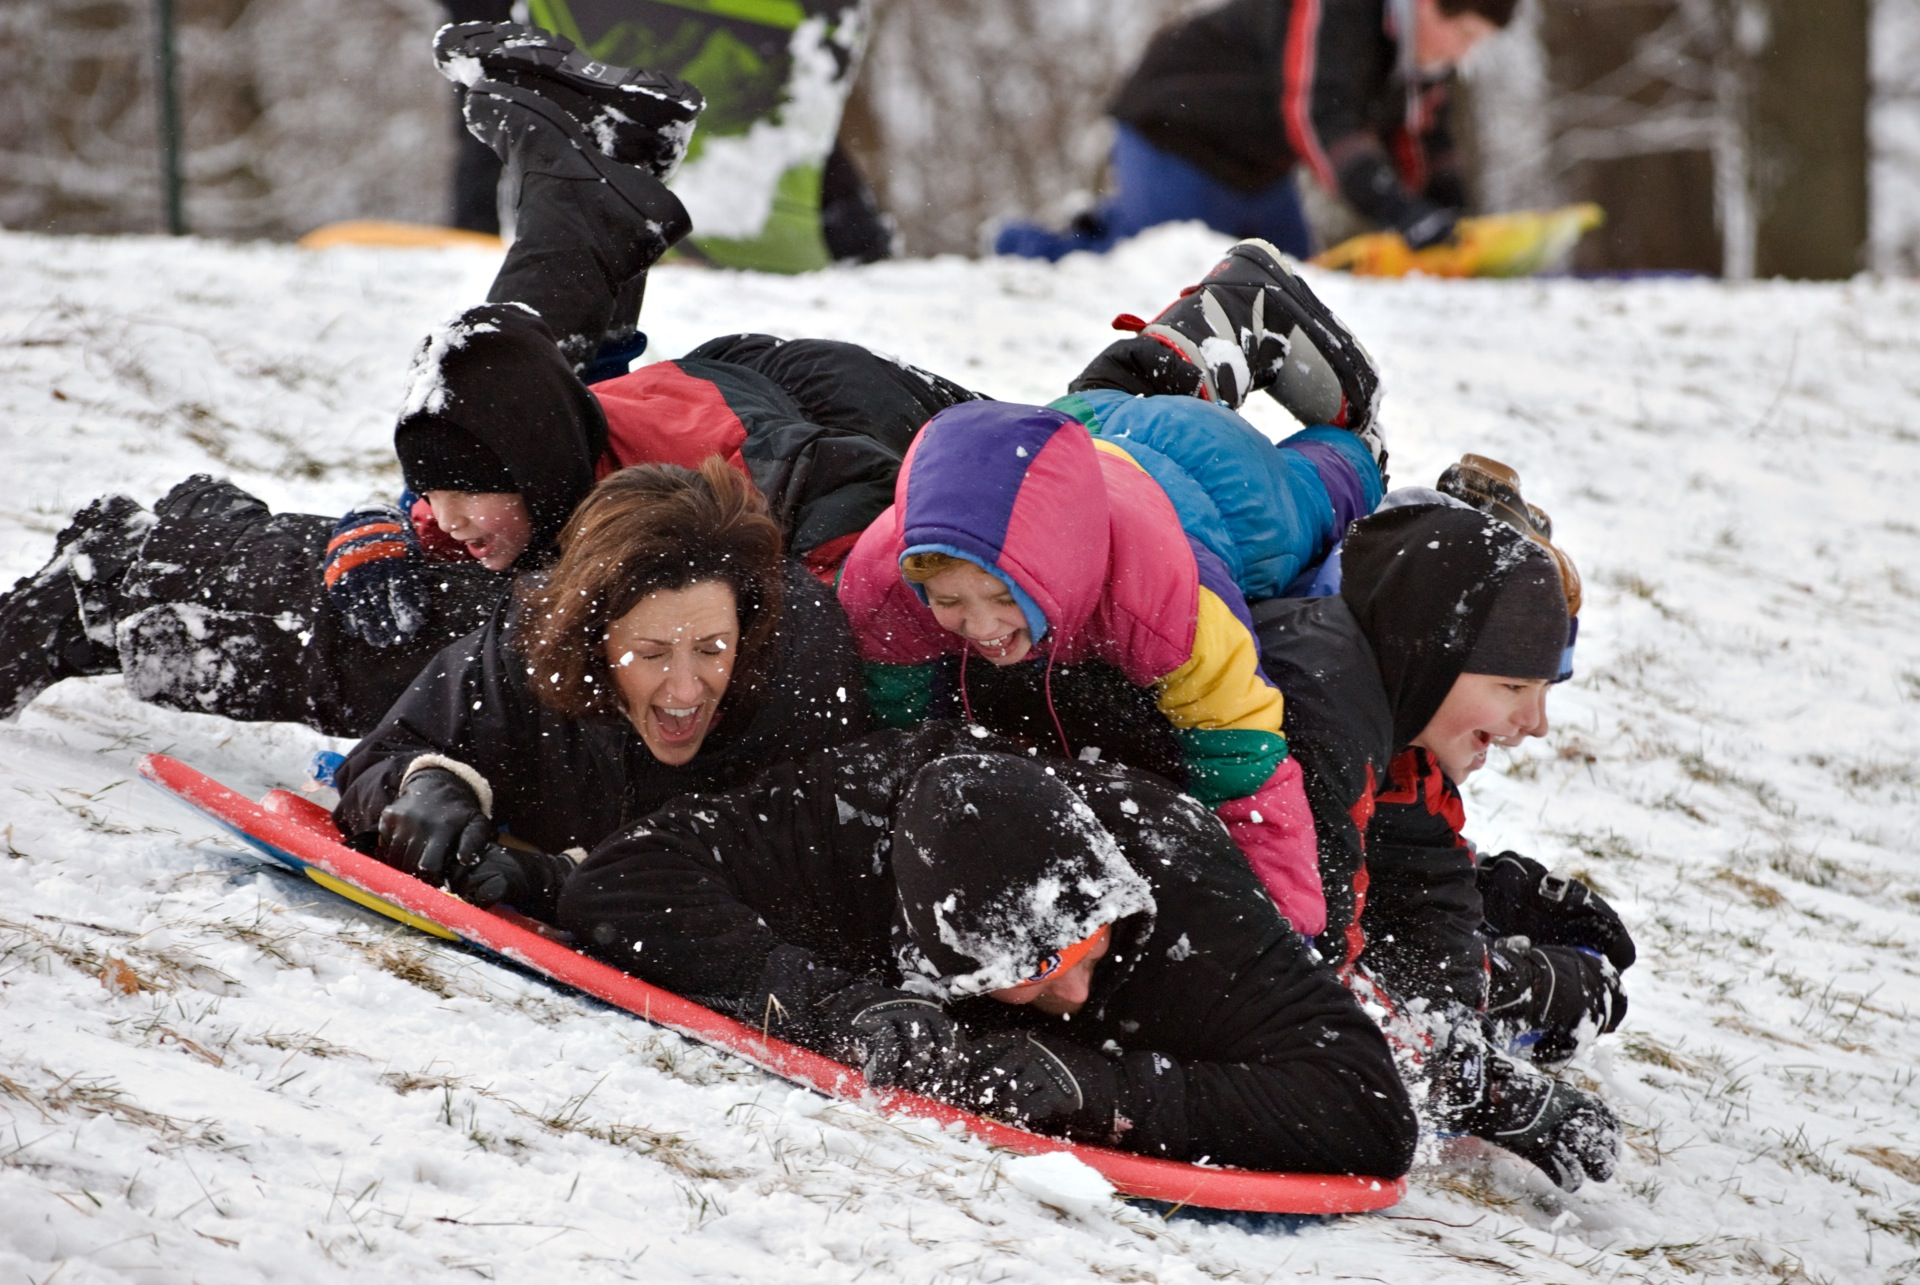 The whole family piles onto each other as they sled down the hill